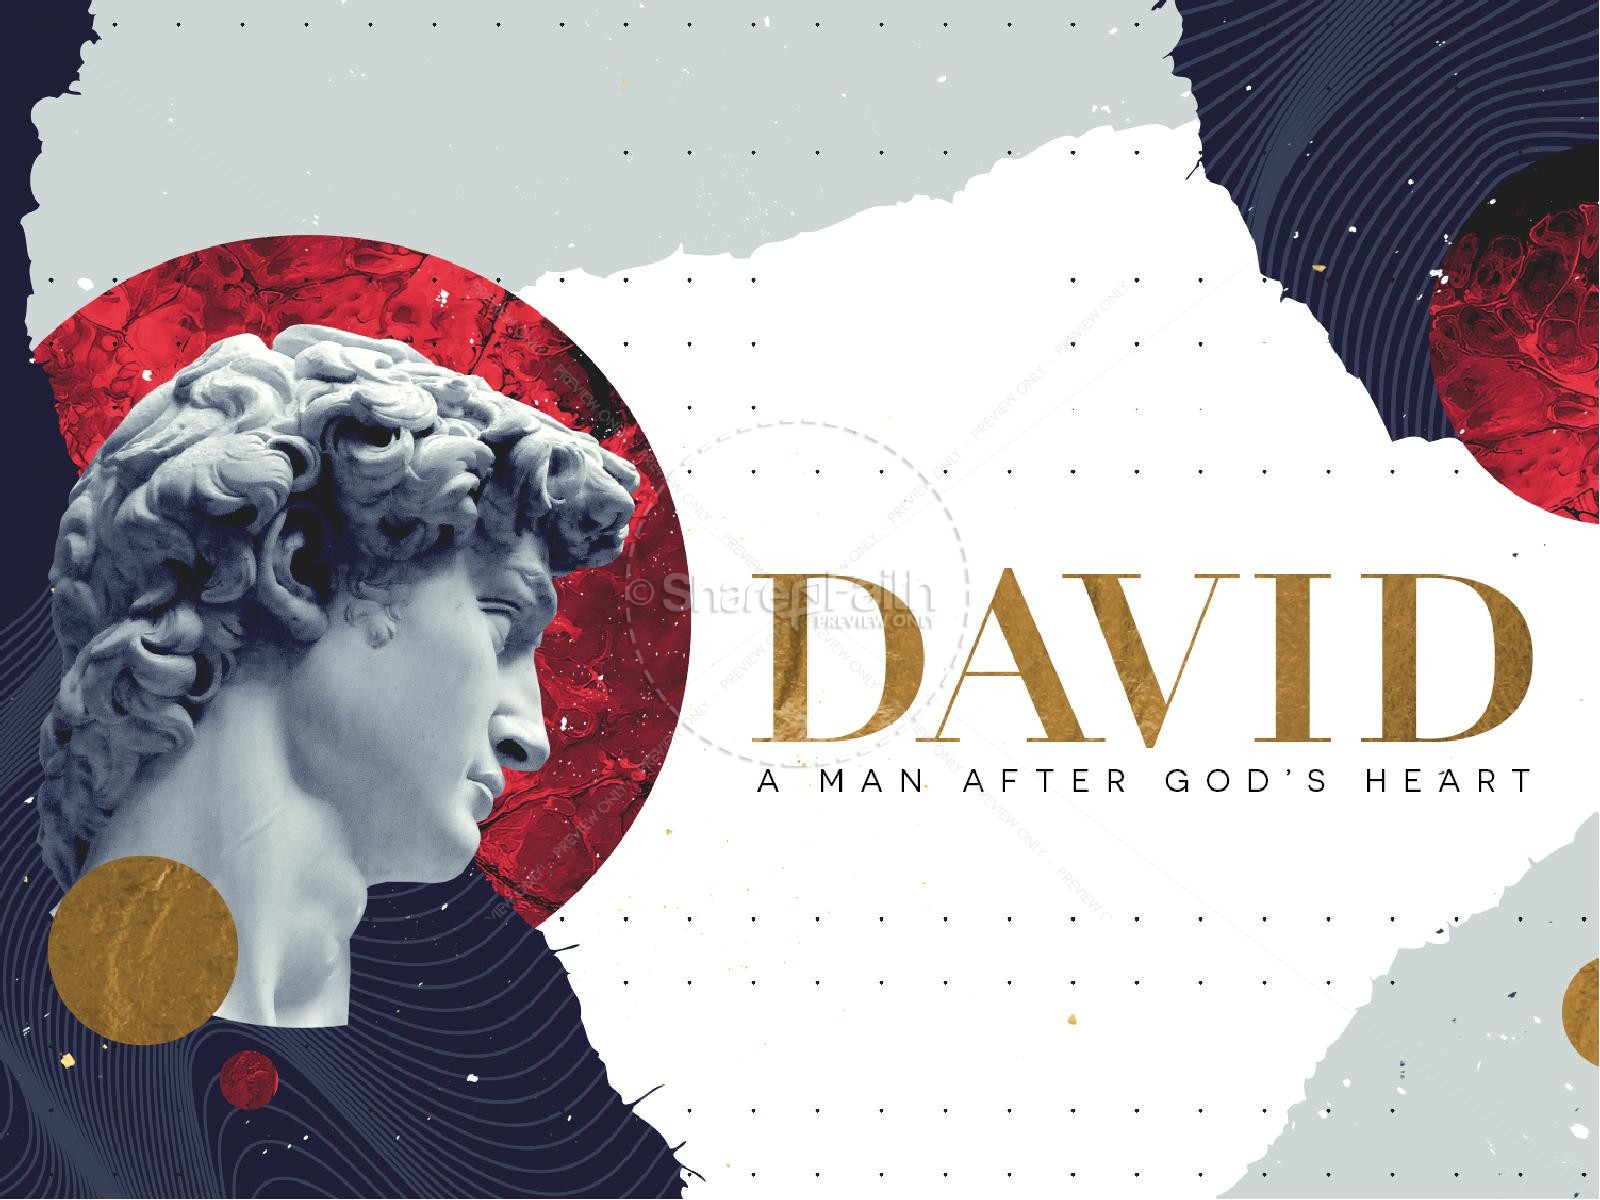 David A Man After God's Heart Sermon Series Graphic